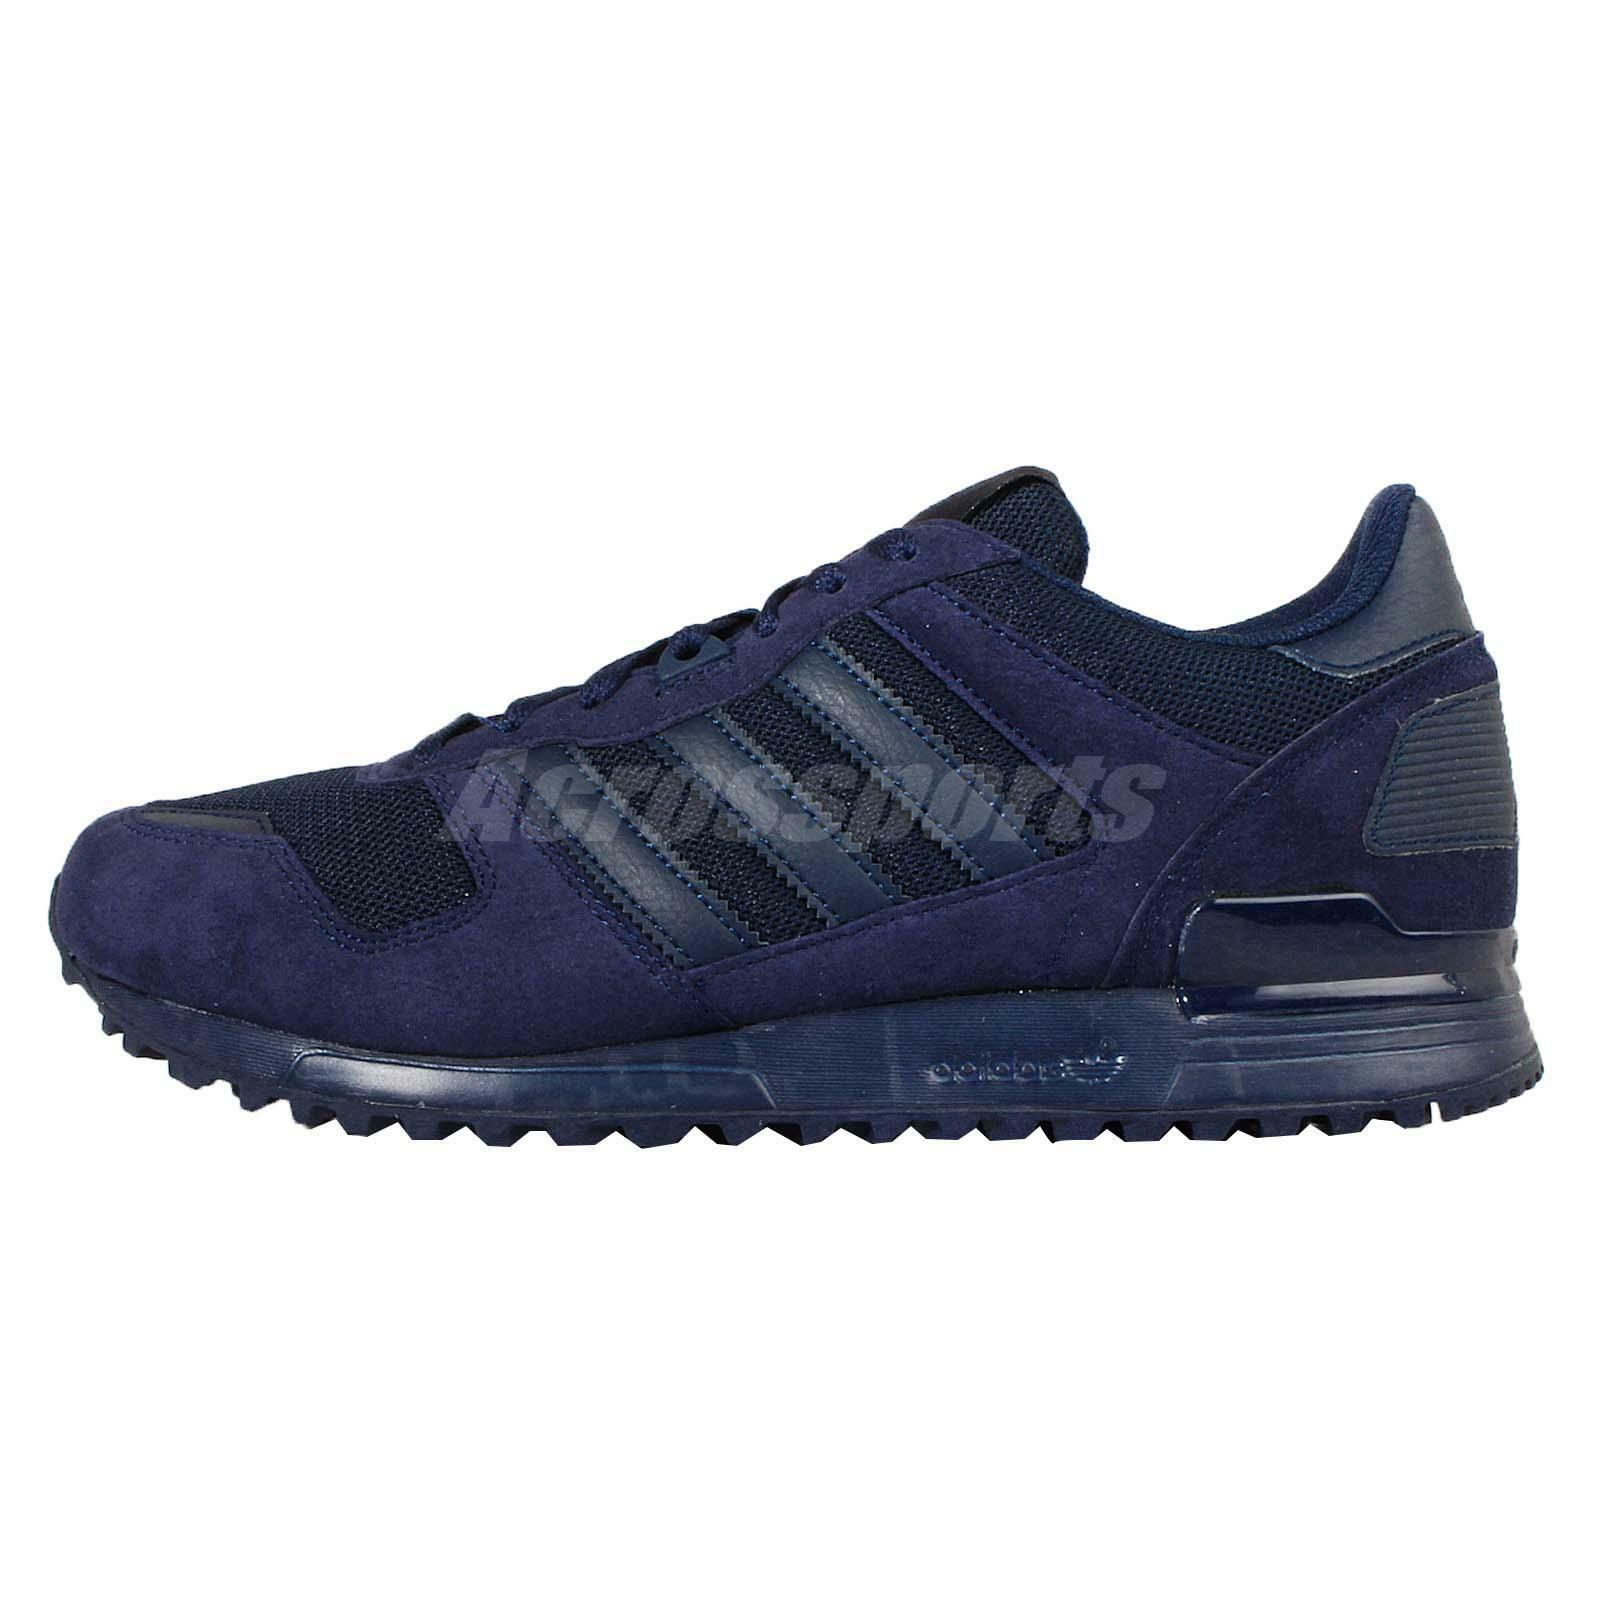 big sale a1af5 61c75 outlet Adidas Originals ZX 700 Navy Suede Mens Casual Shoes Sneakers  Trainers S79186